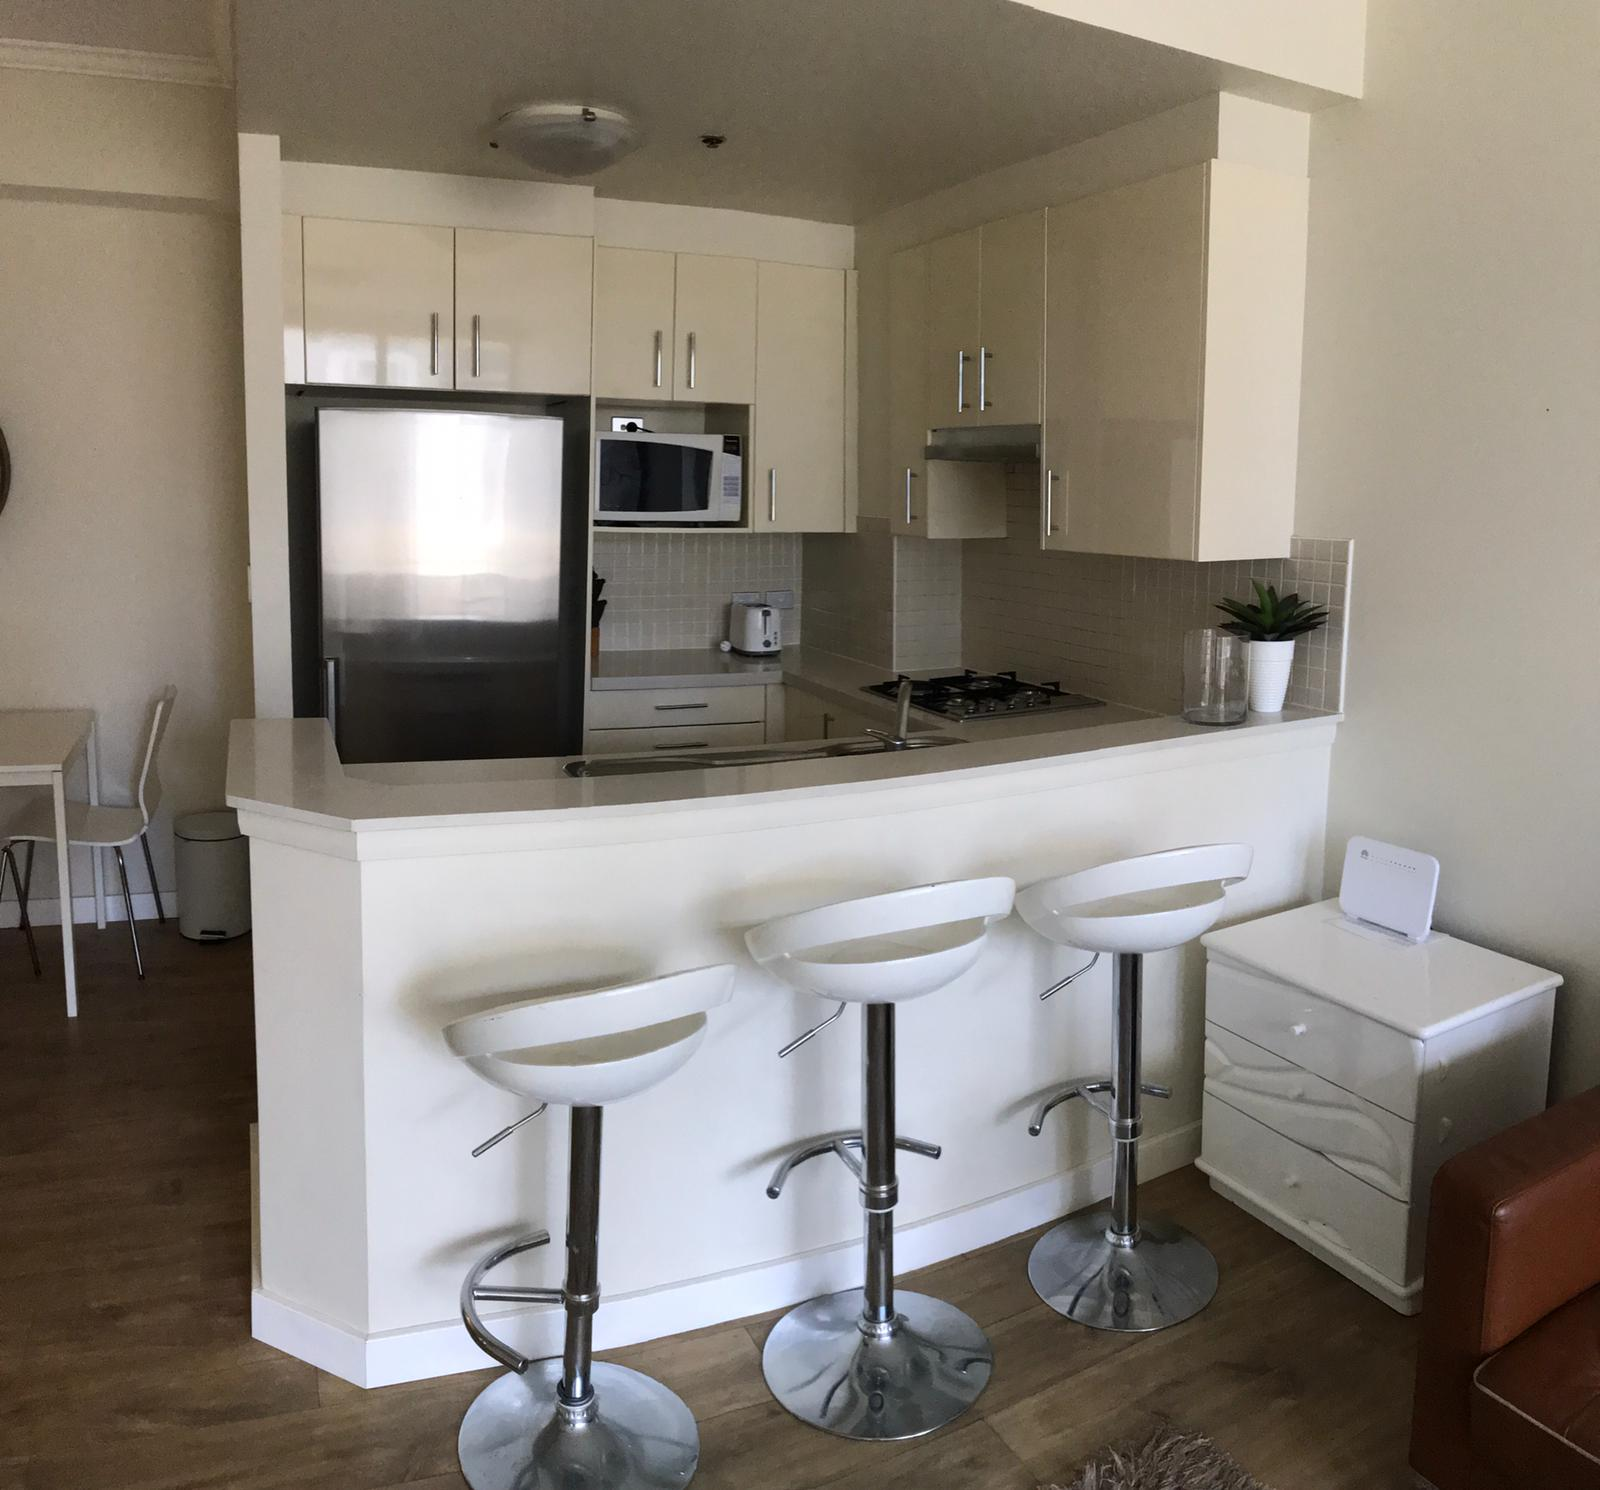 Kitchen at the Downtown Apartments